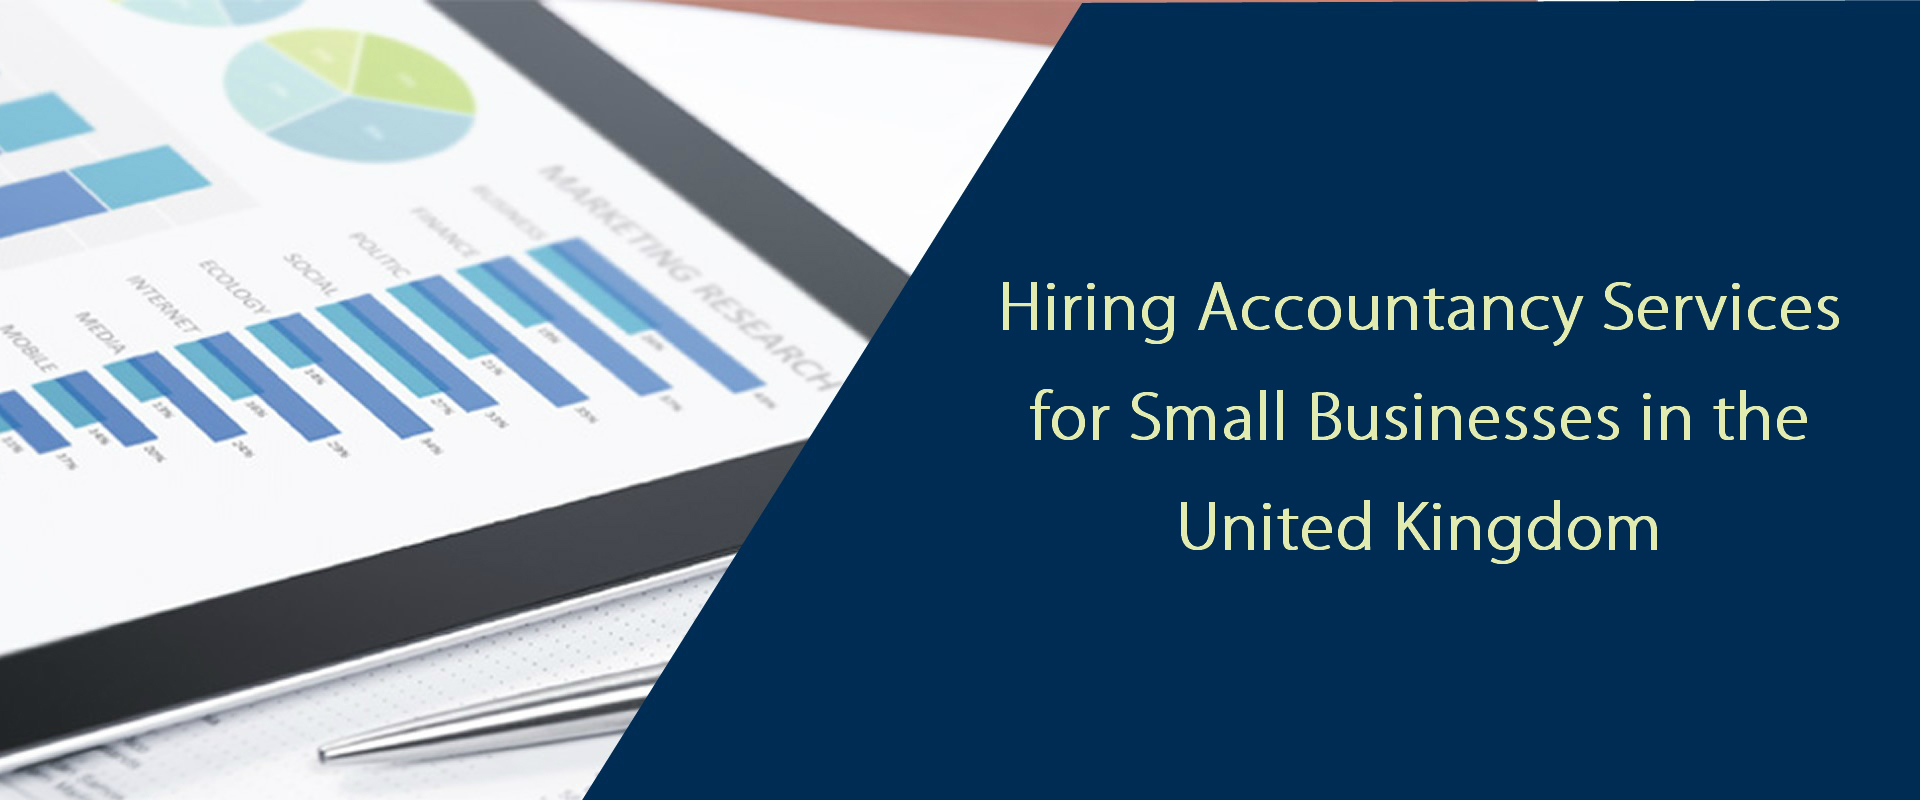 Hiring Accountancy Services for Small Businesses in the United Kingdom